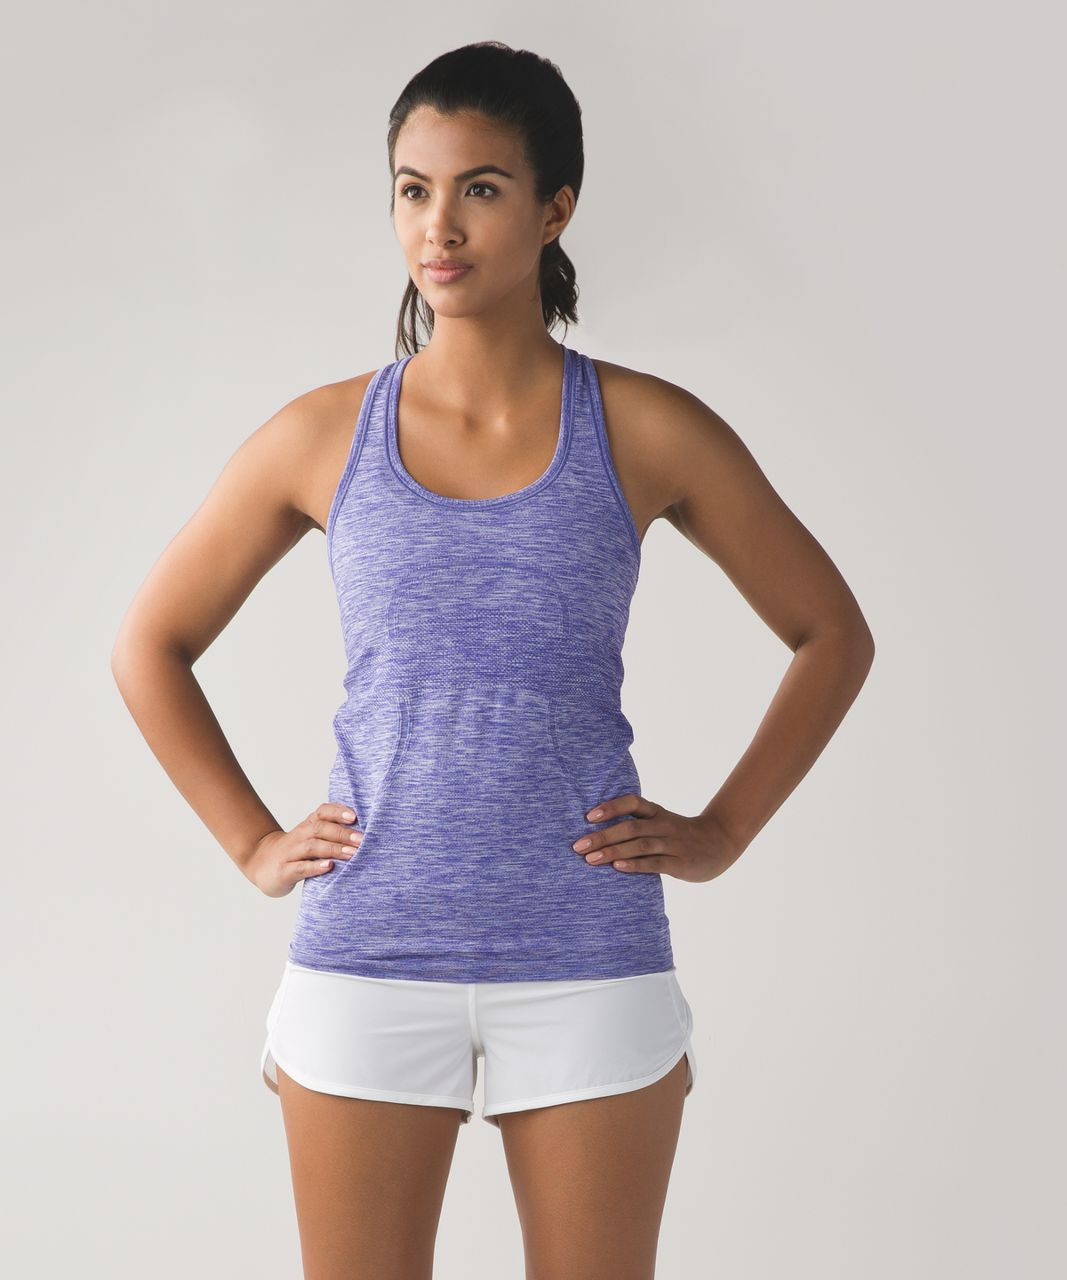 Lululemon Swiftly Tech Racerback - Heathered Iris Flower